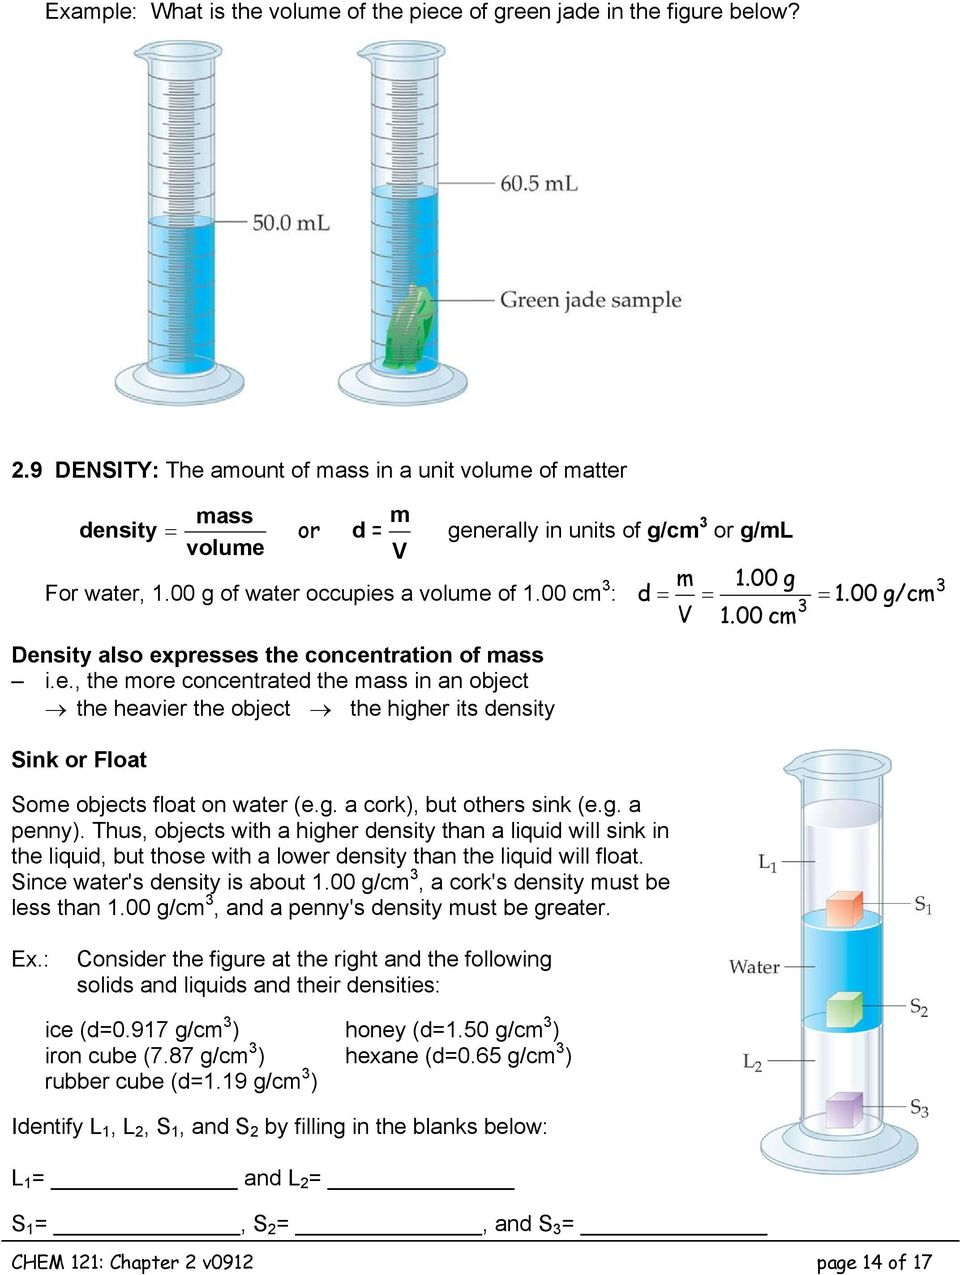 00 g d = = 3 V 1.00 cm = 1.00 g/cm Density also expresses the concentration of mass i.e., the more concentrated the mass in an object the heavier the object the higher its density Sink or Float Some objects float on water (e.